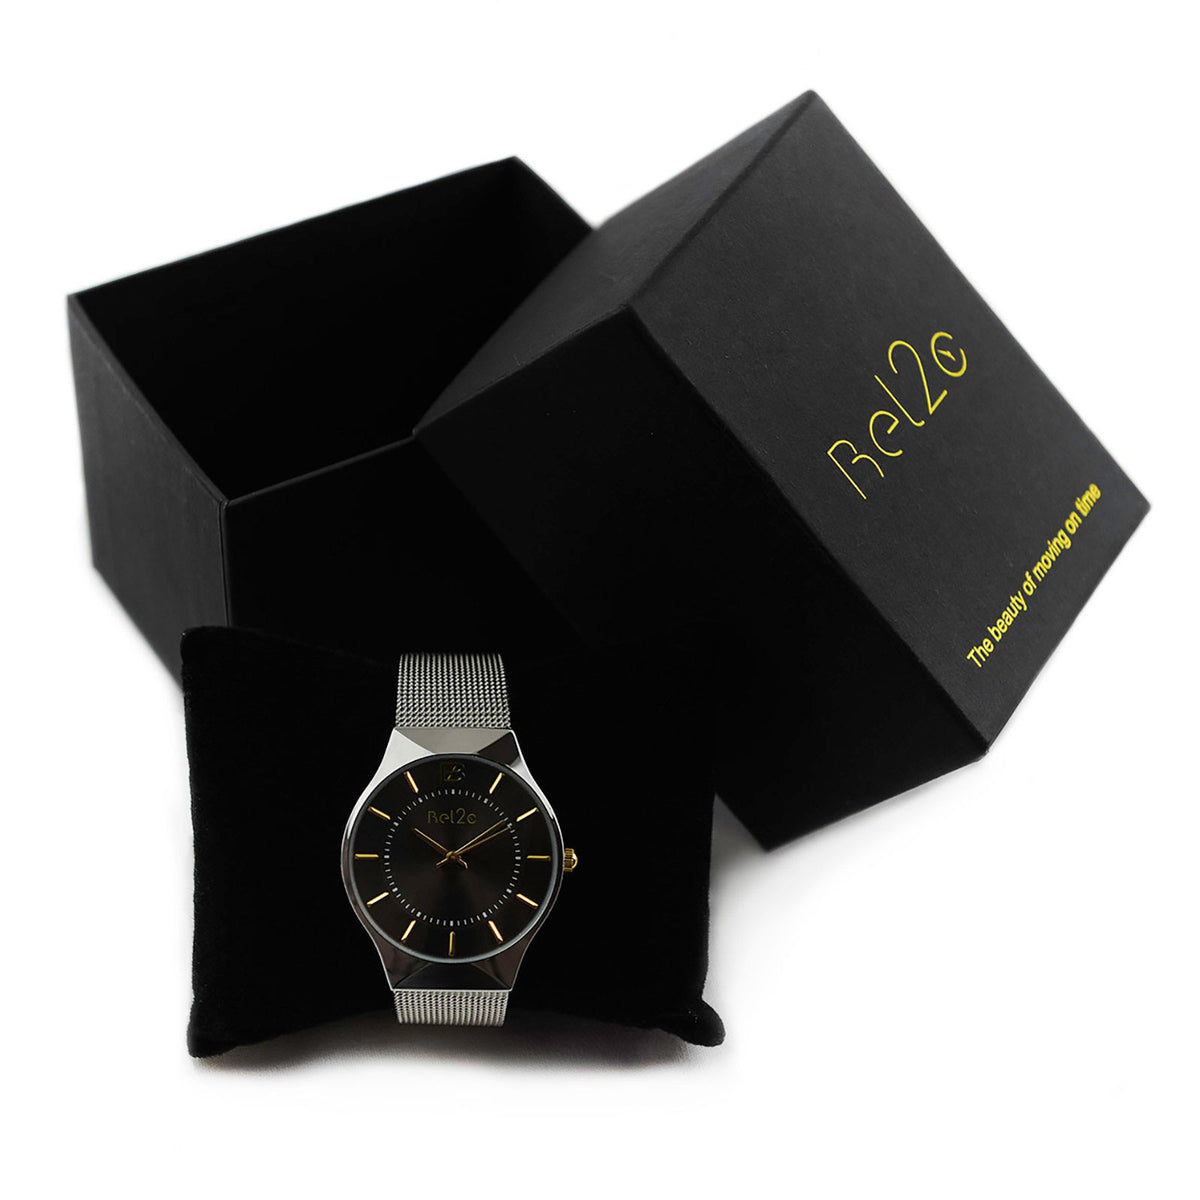 Cool gift box of Bel2c lagom black timepiece